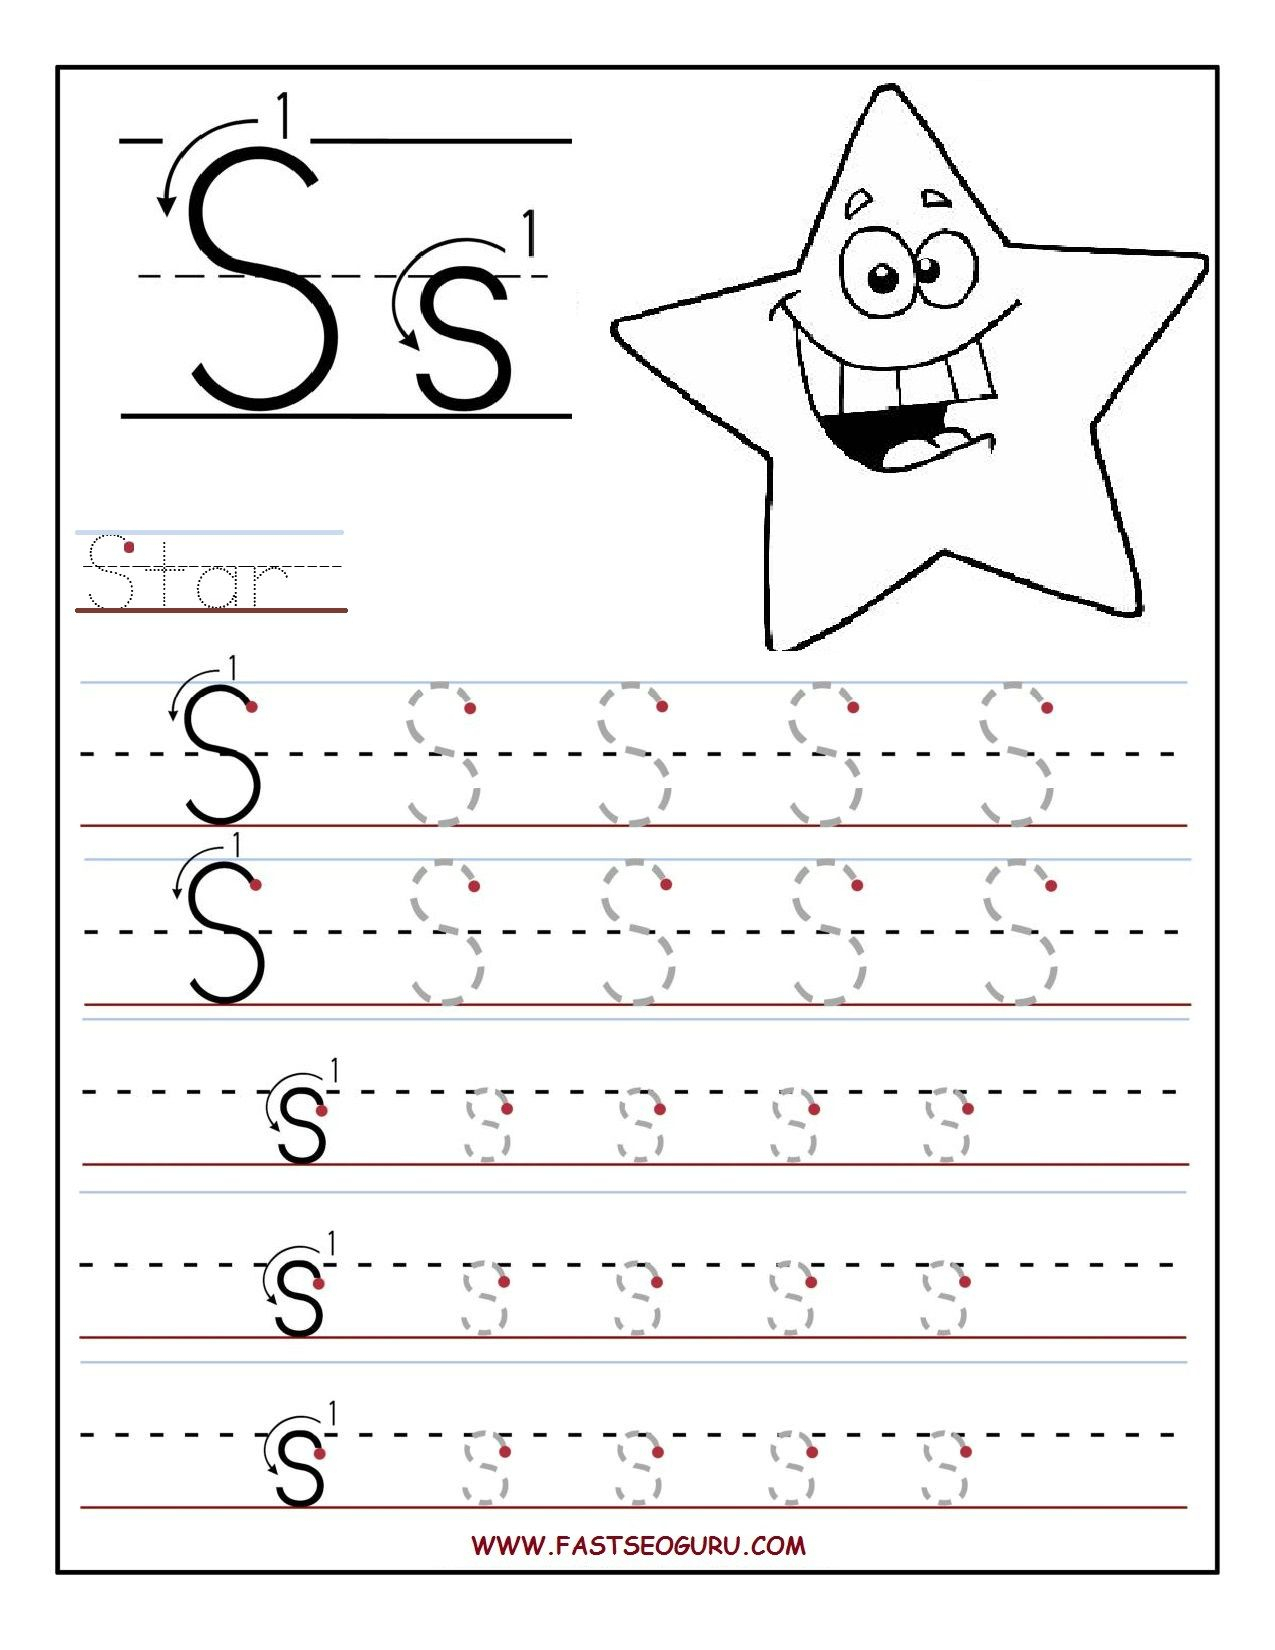 Printable Tracing Letters For Toddlers